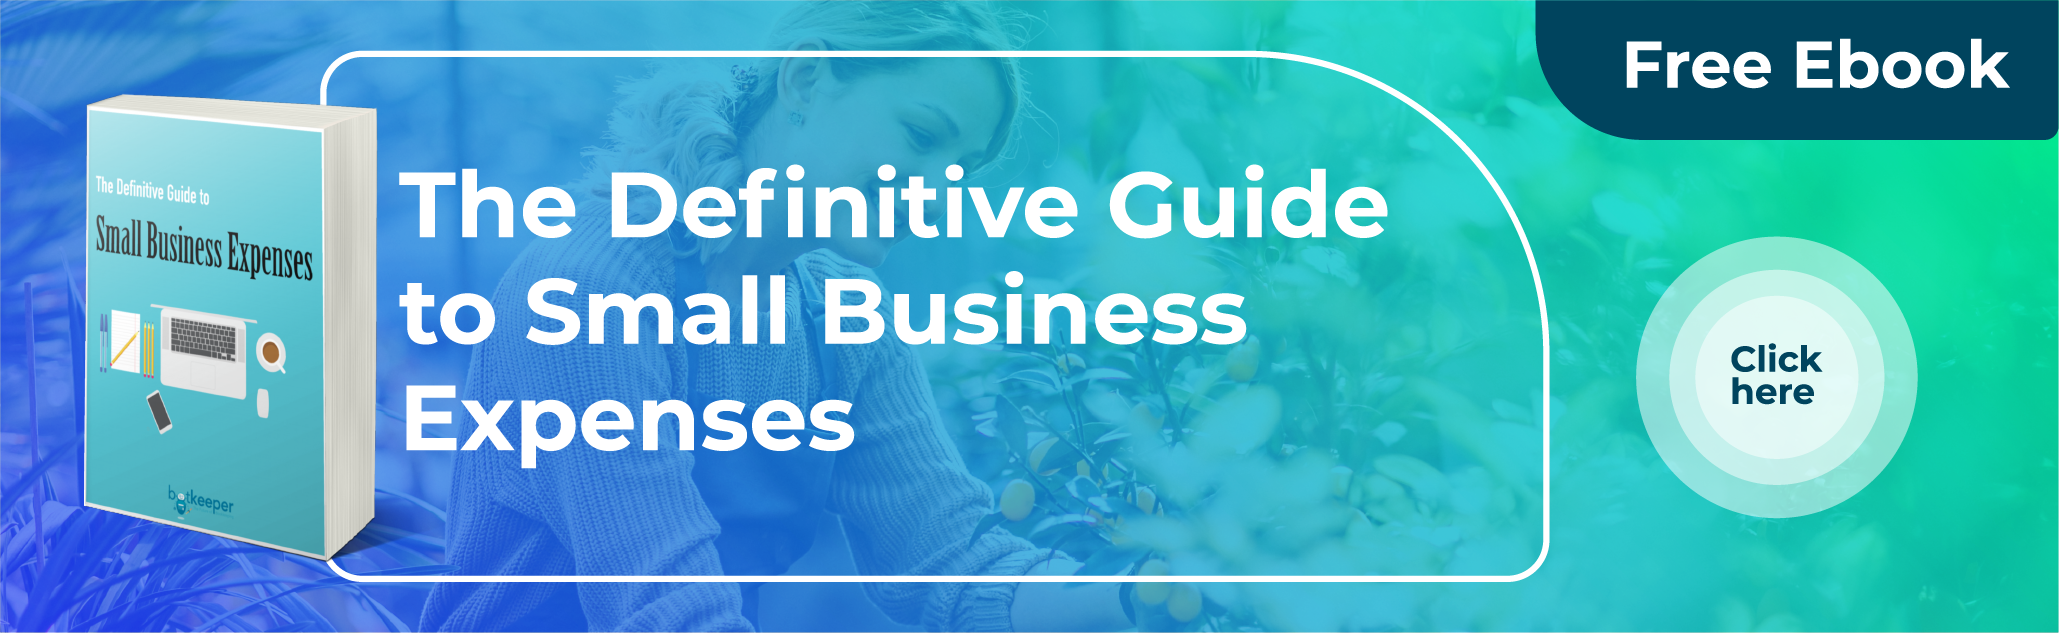 The Definitive Guide to small business expenses | Botkeeper